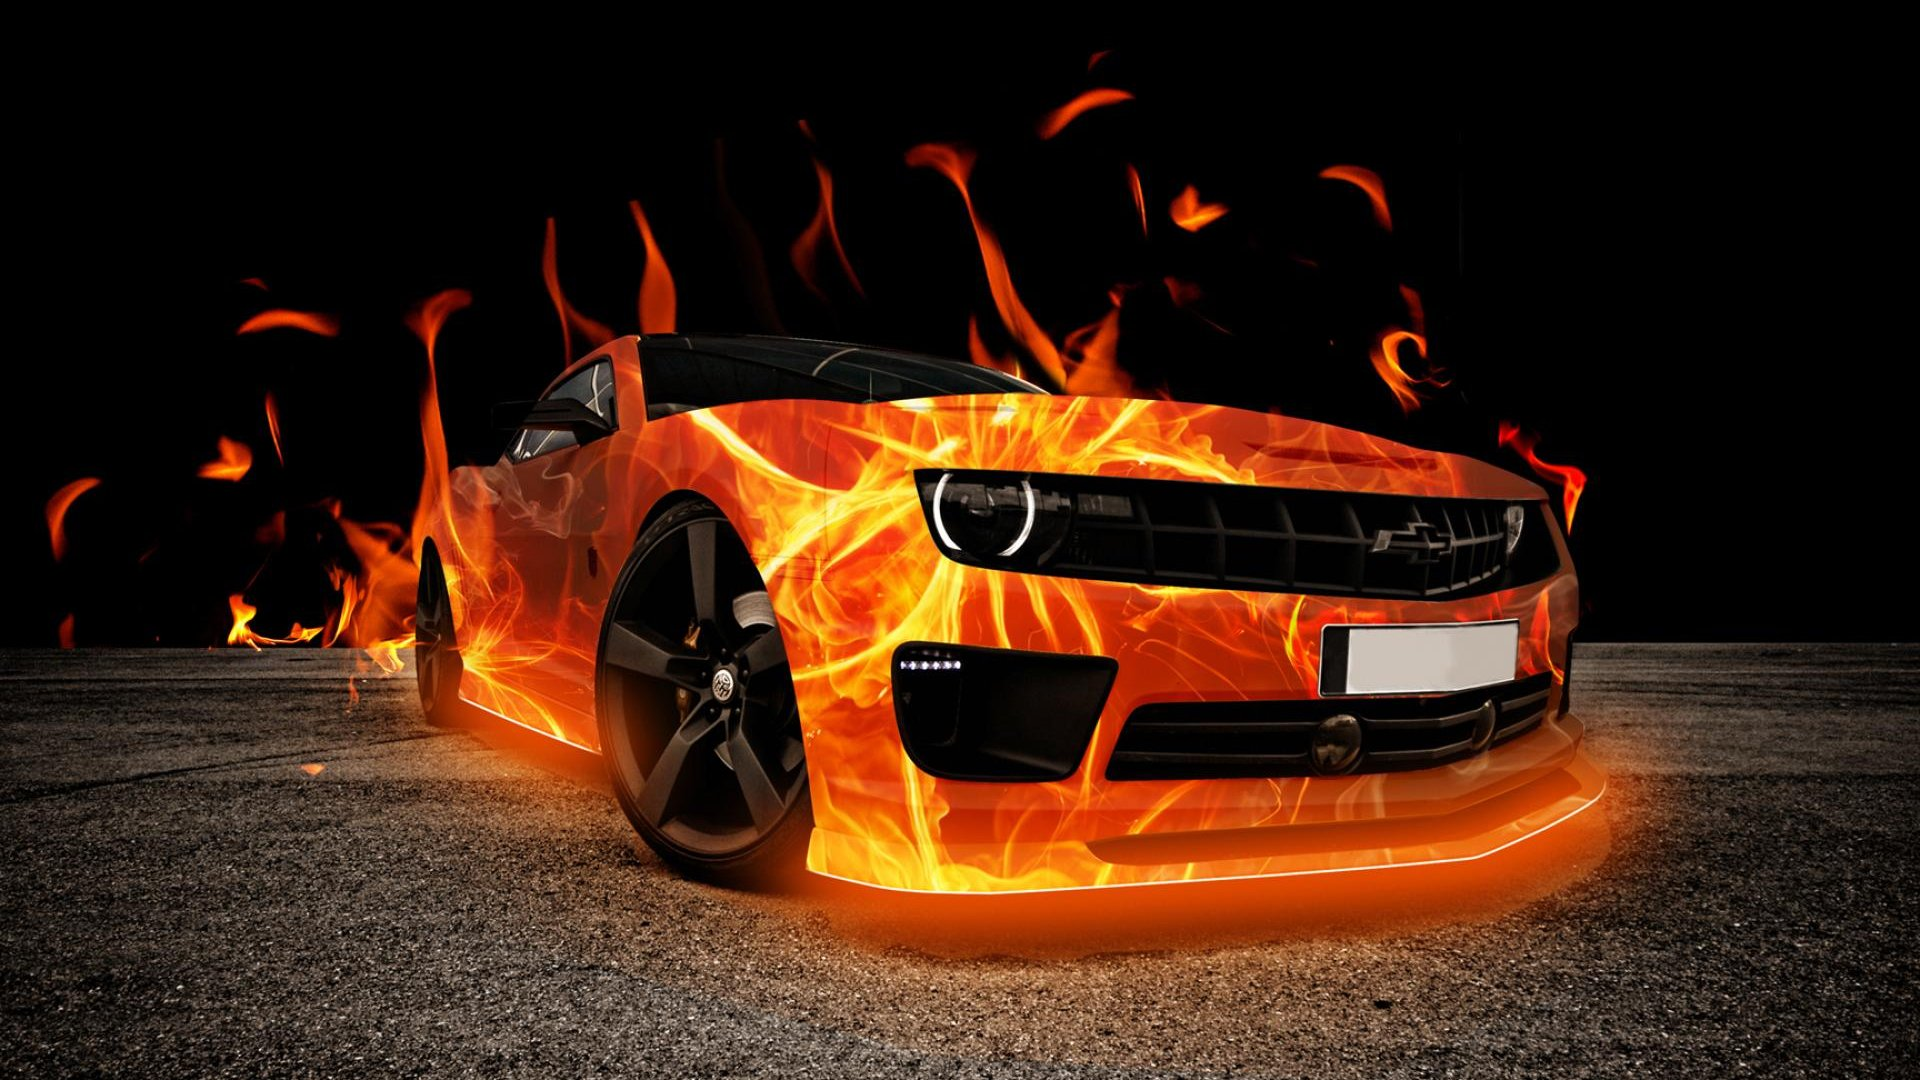 3D HD Wallpapers Of Cars